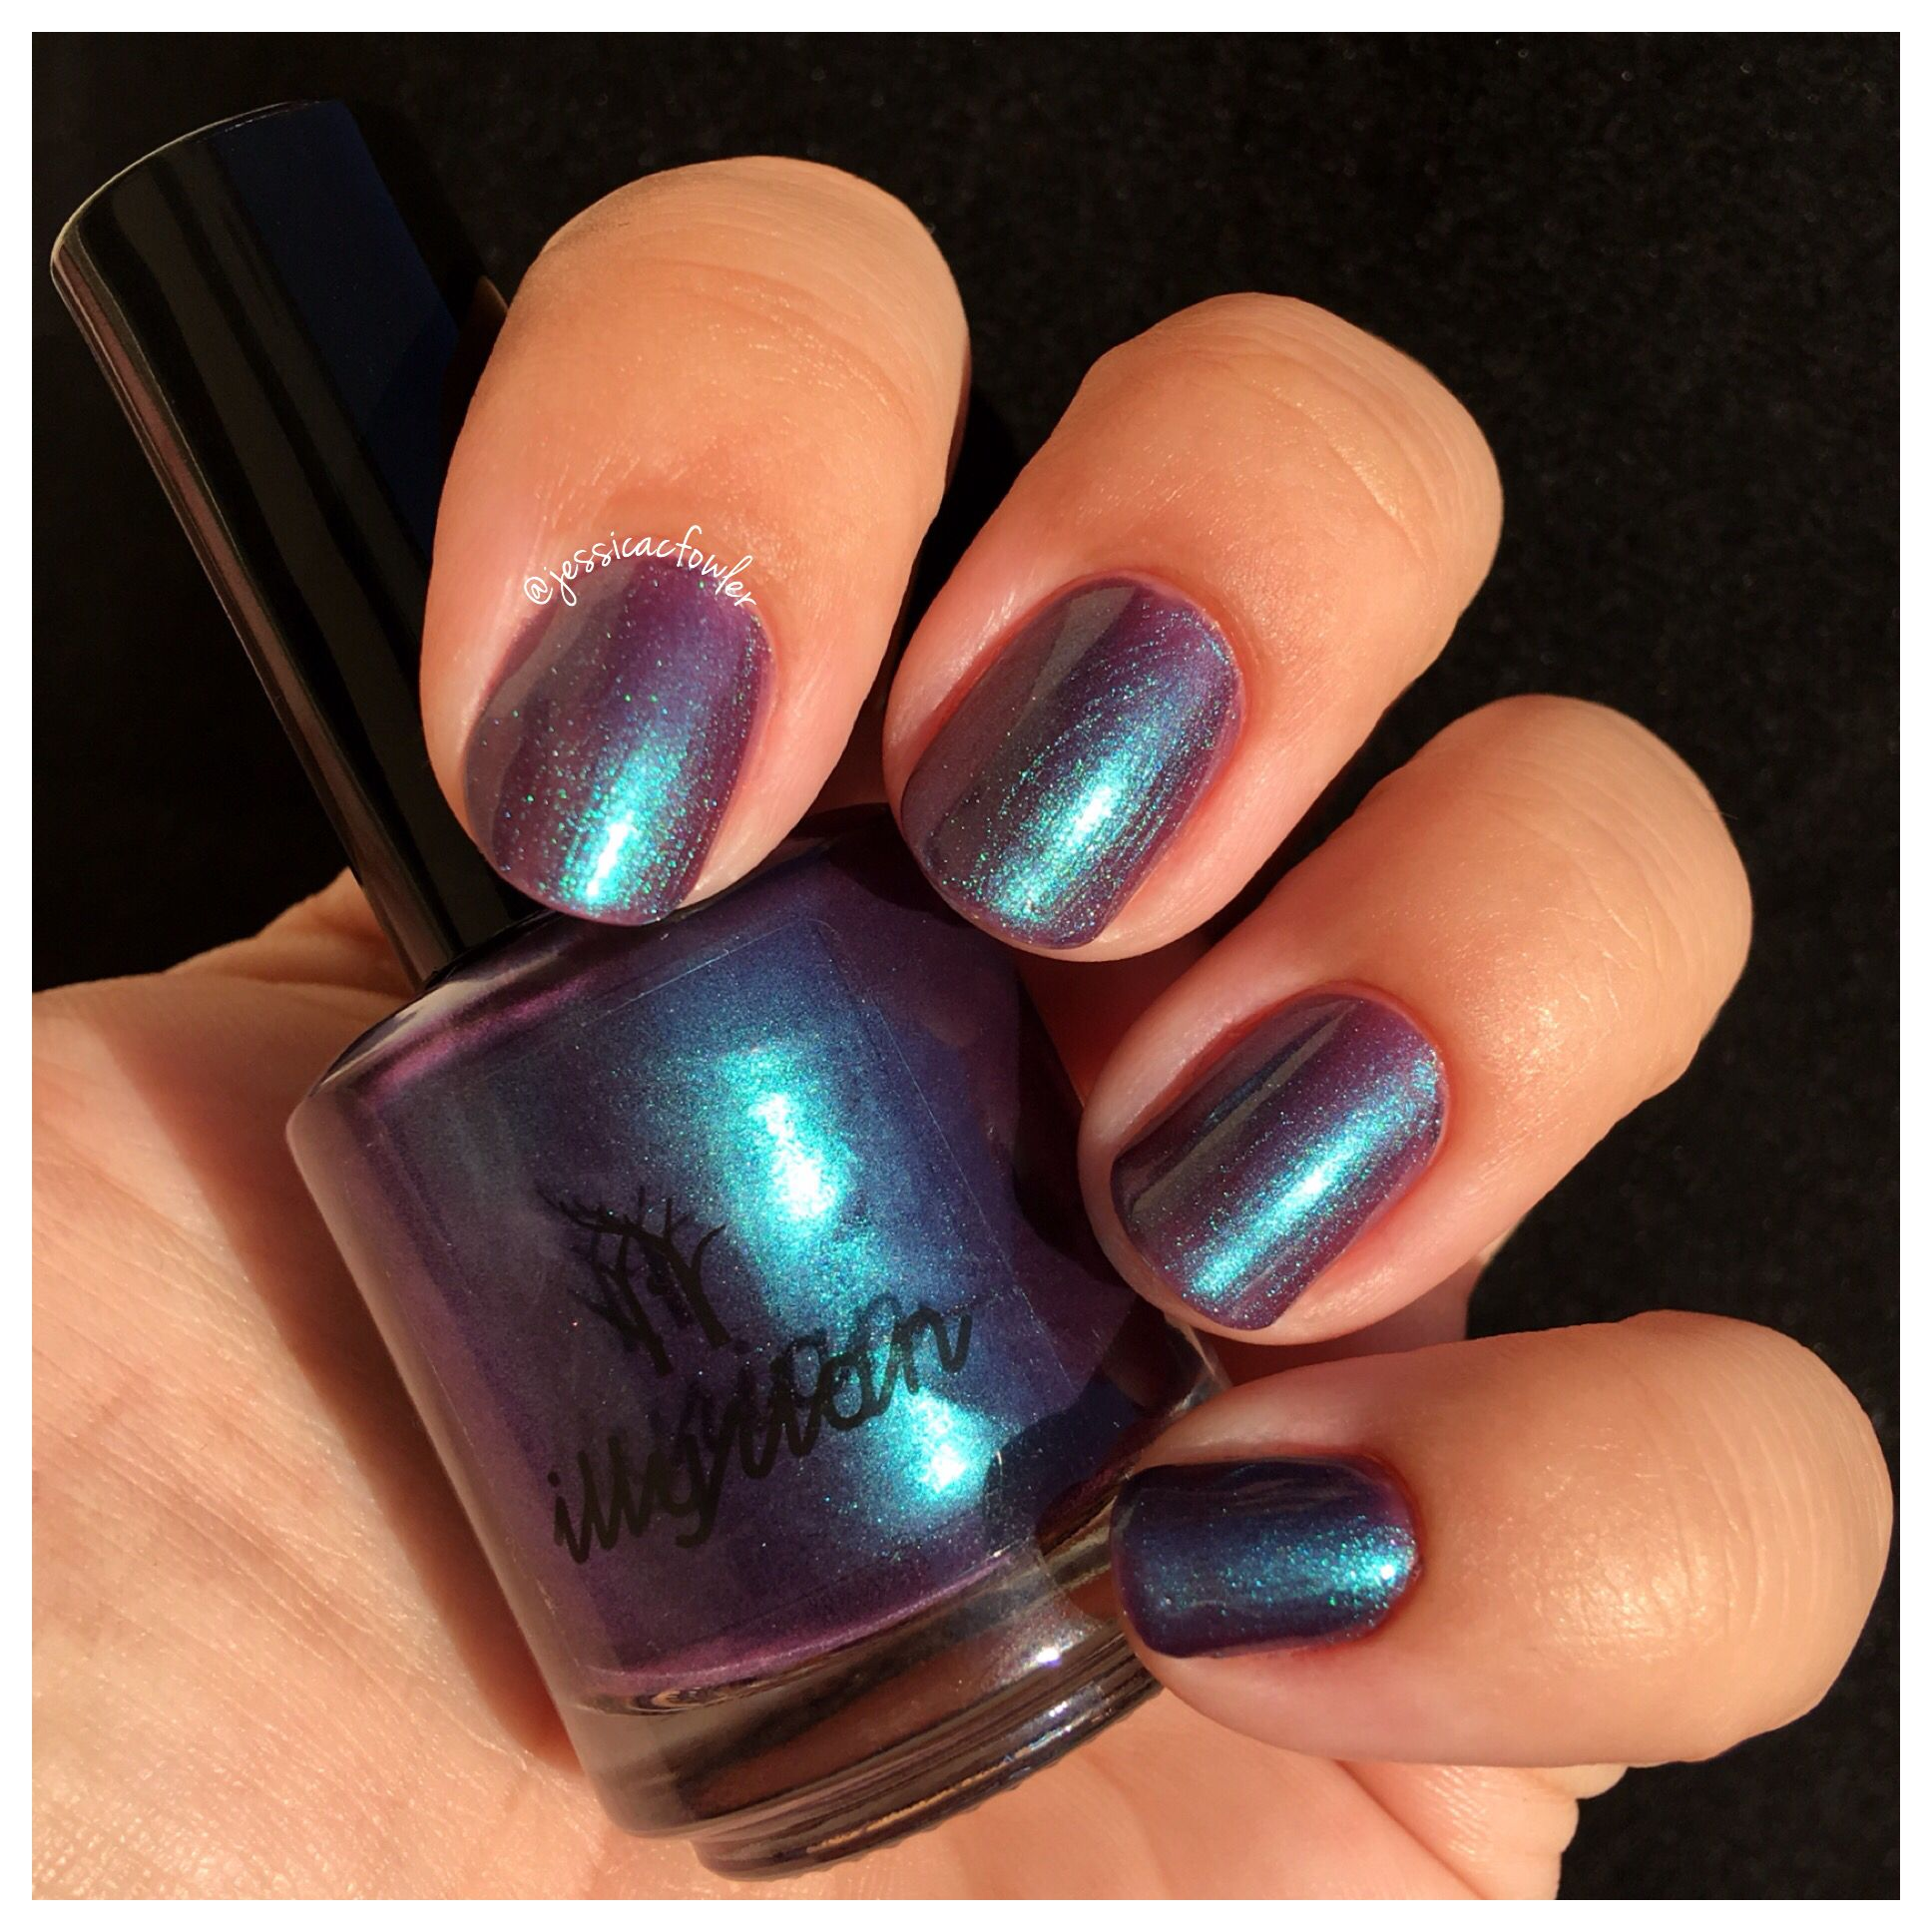 Illyrian Polish - Deadly Nightshade | Polish, Nail polish ...